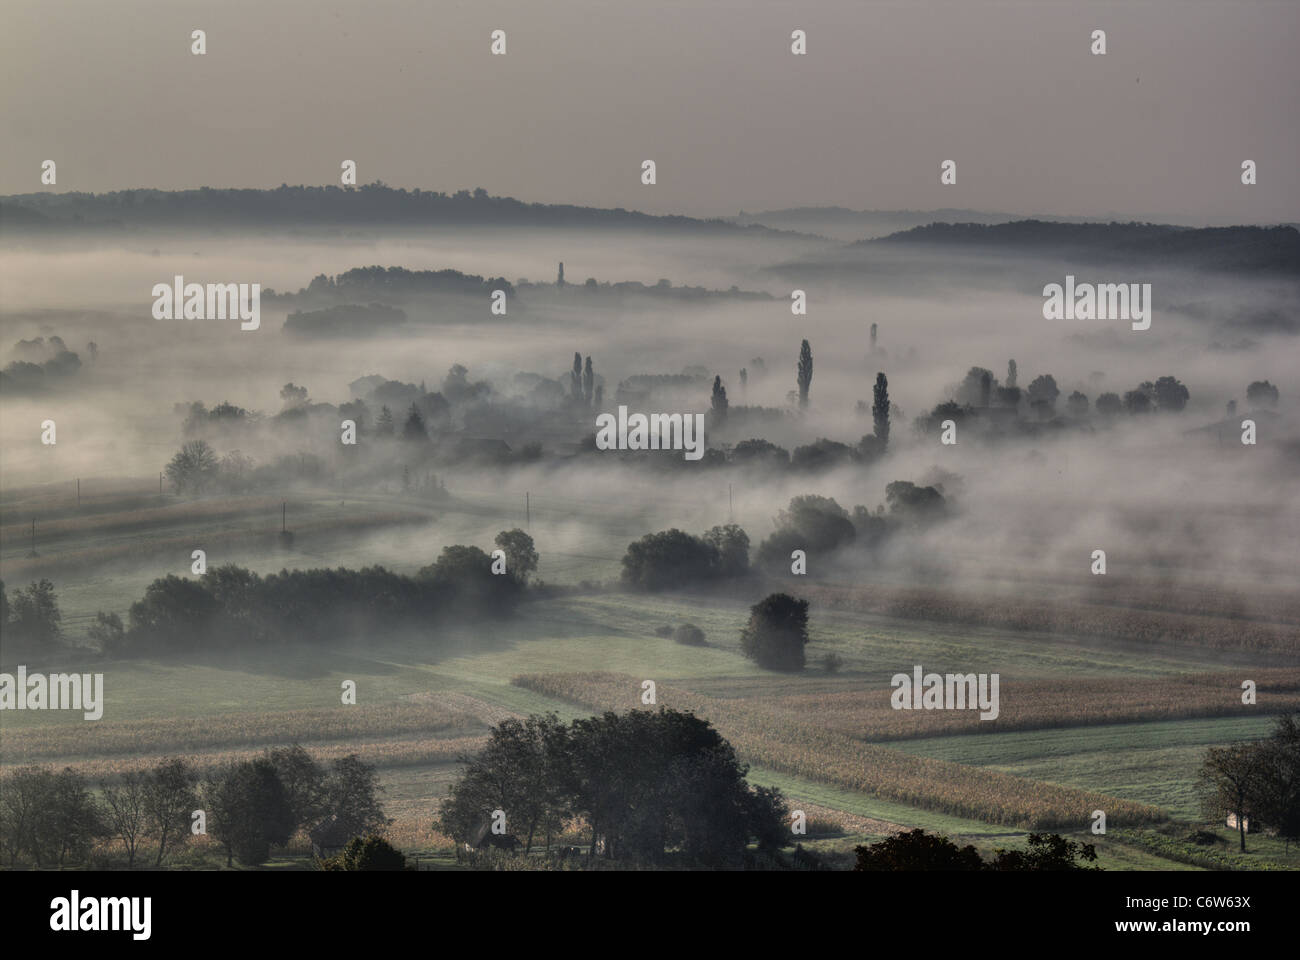 Morning fog and haze in the valley - sleepy hollow - Stock Image